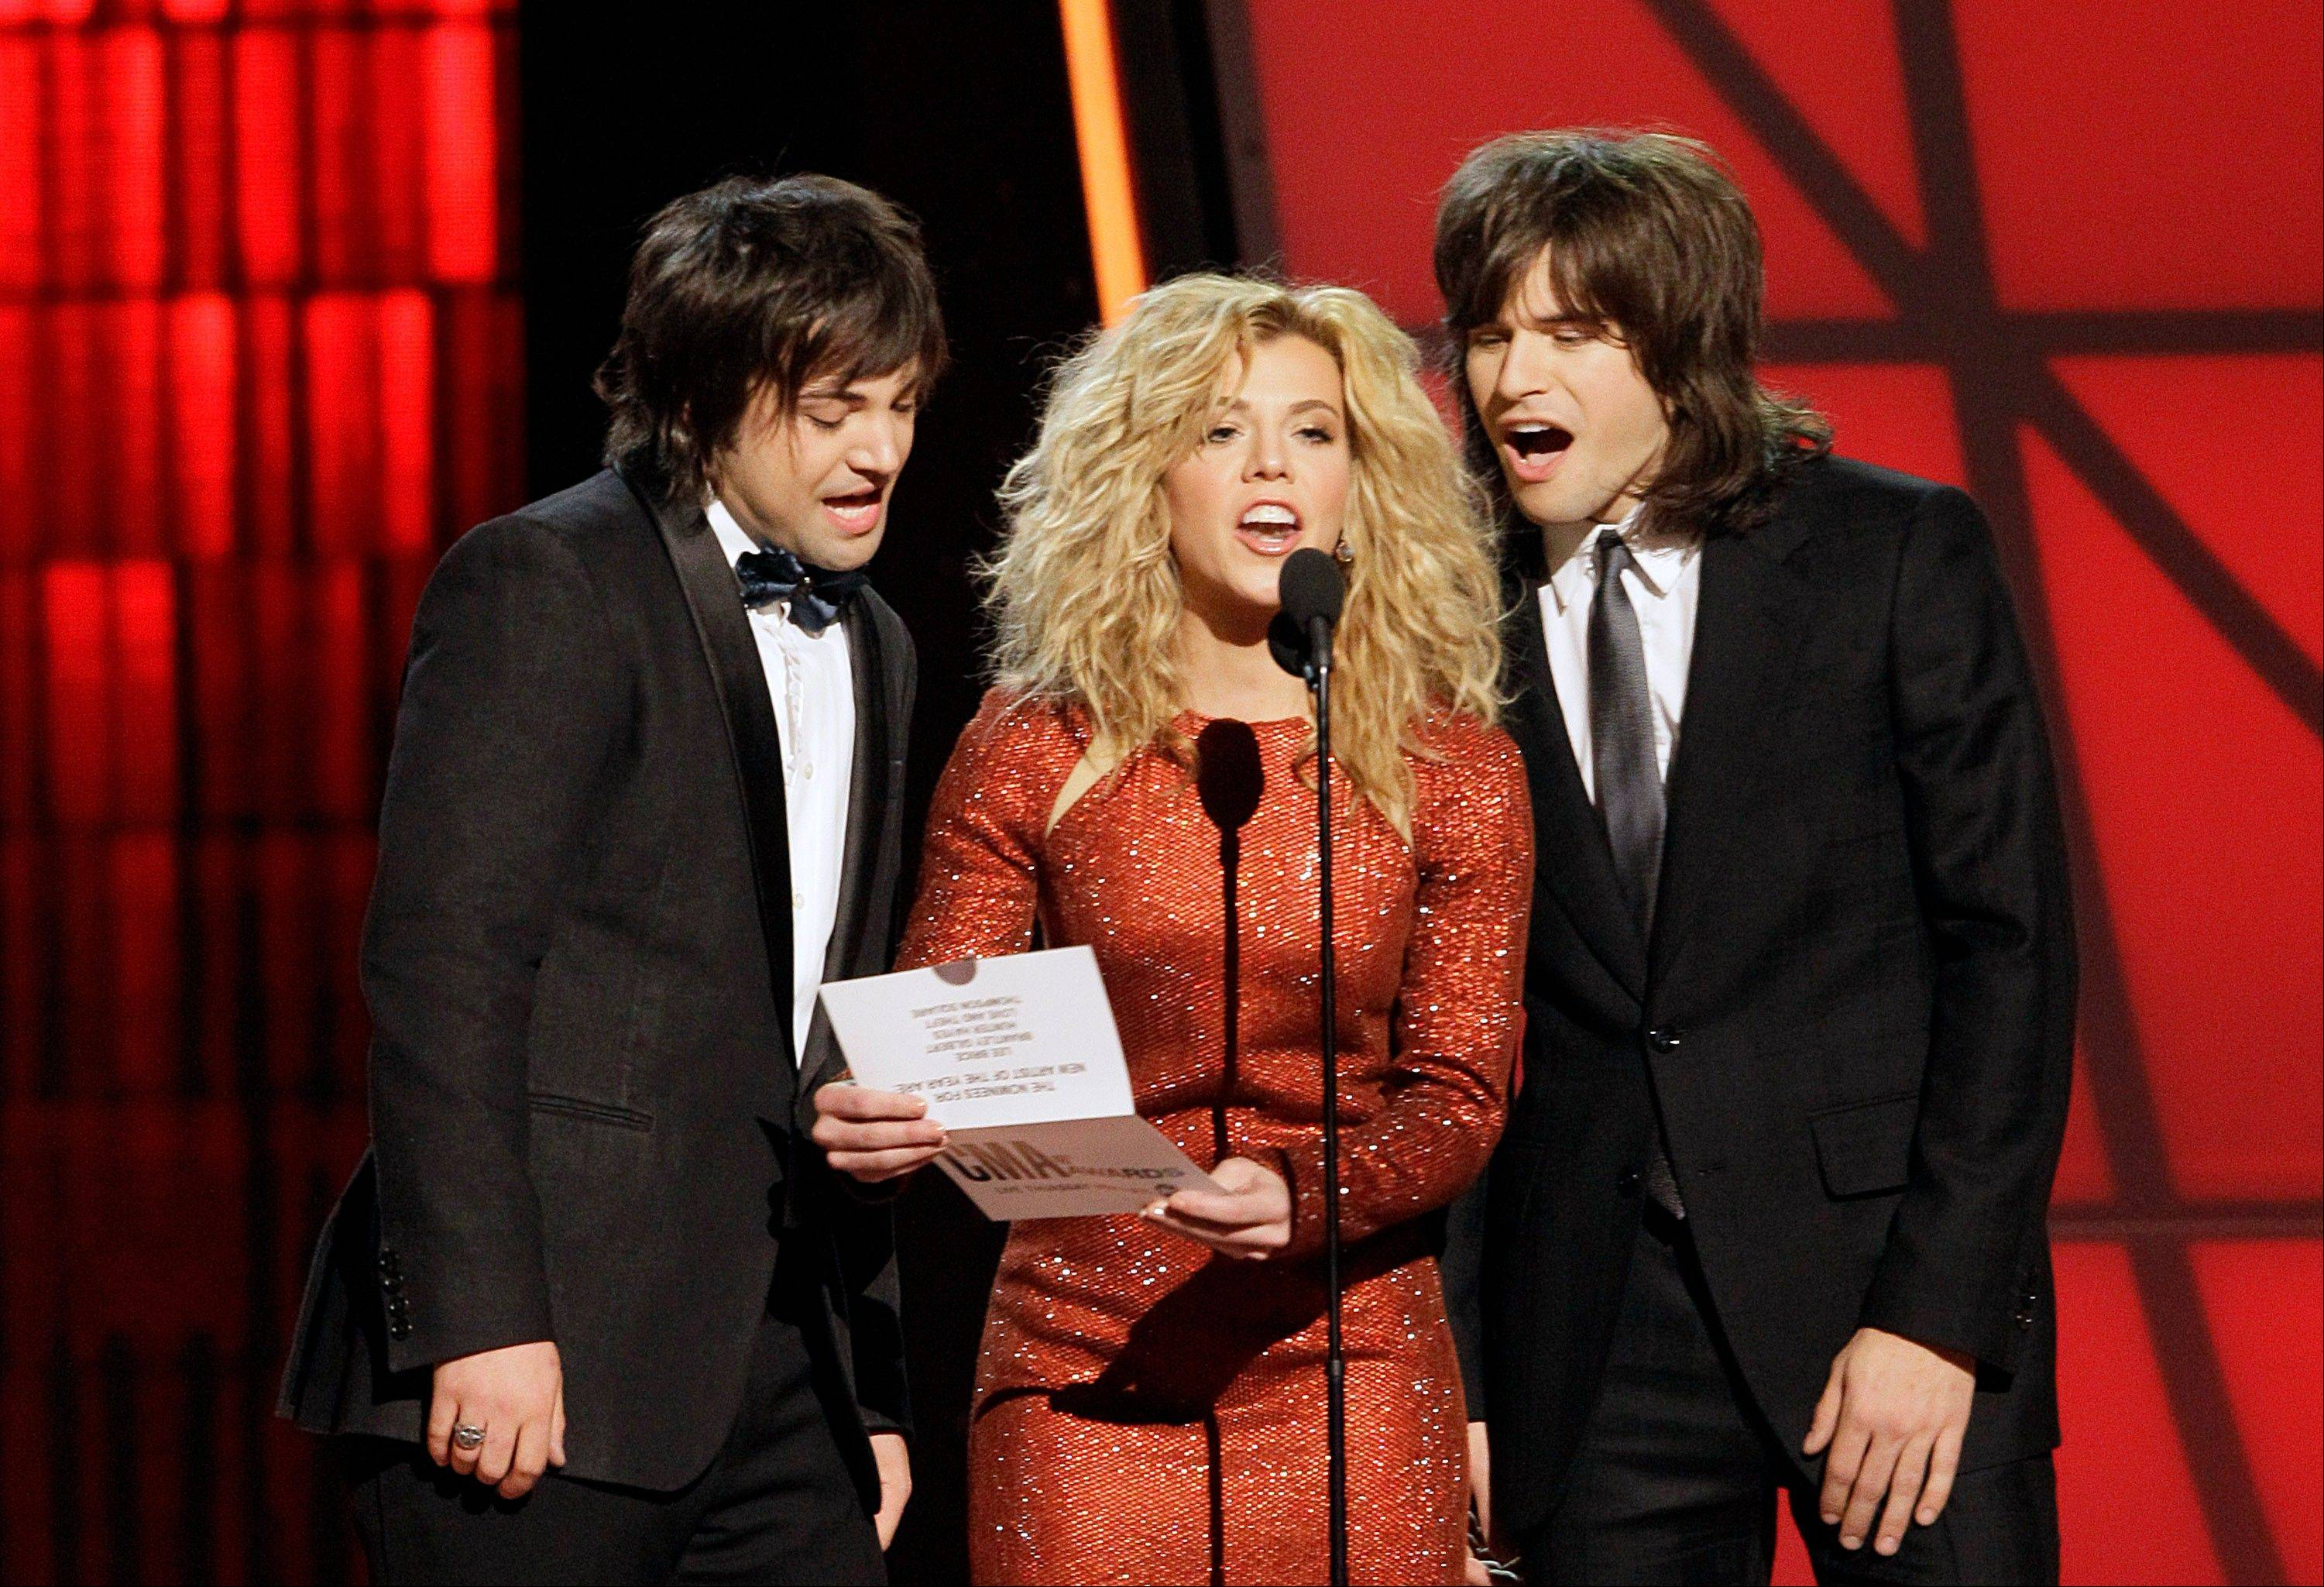 Neil Perry, left, Kimberly Perry, center, and Reid Perry, of The Band Perry, present the award for new artist of the year at the 46th Annual Country Music Awards at the Bridgestone Arena on Thursday, Nov. 1, 2012, in Nashville, Tenn.